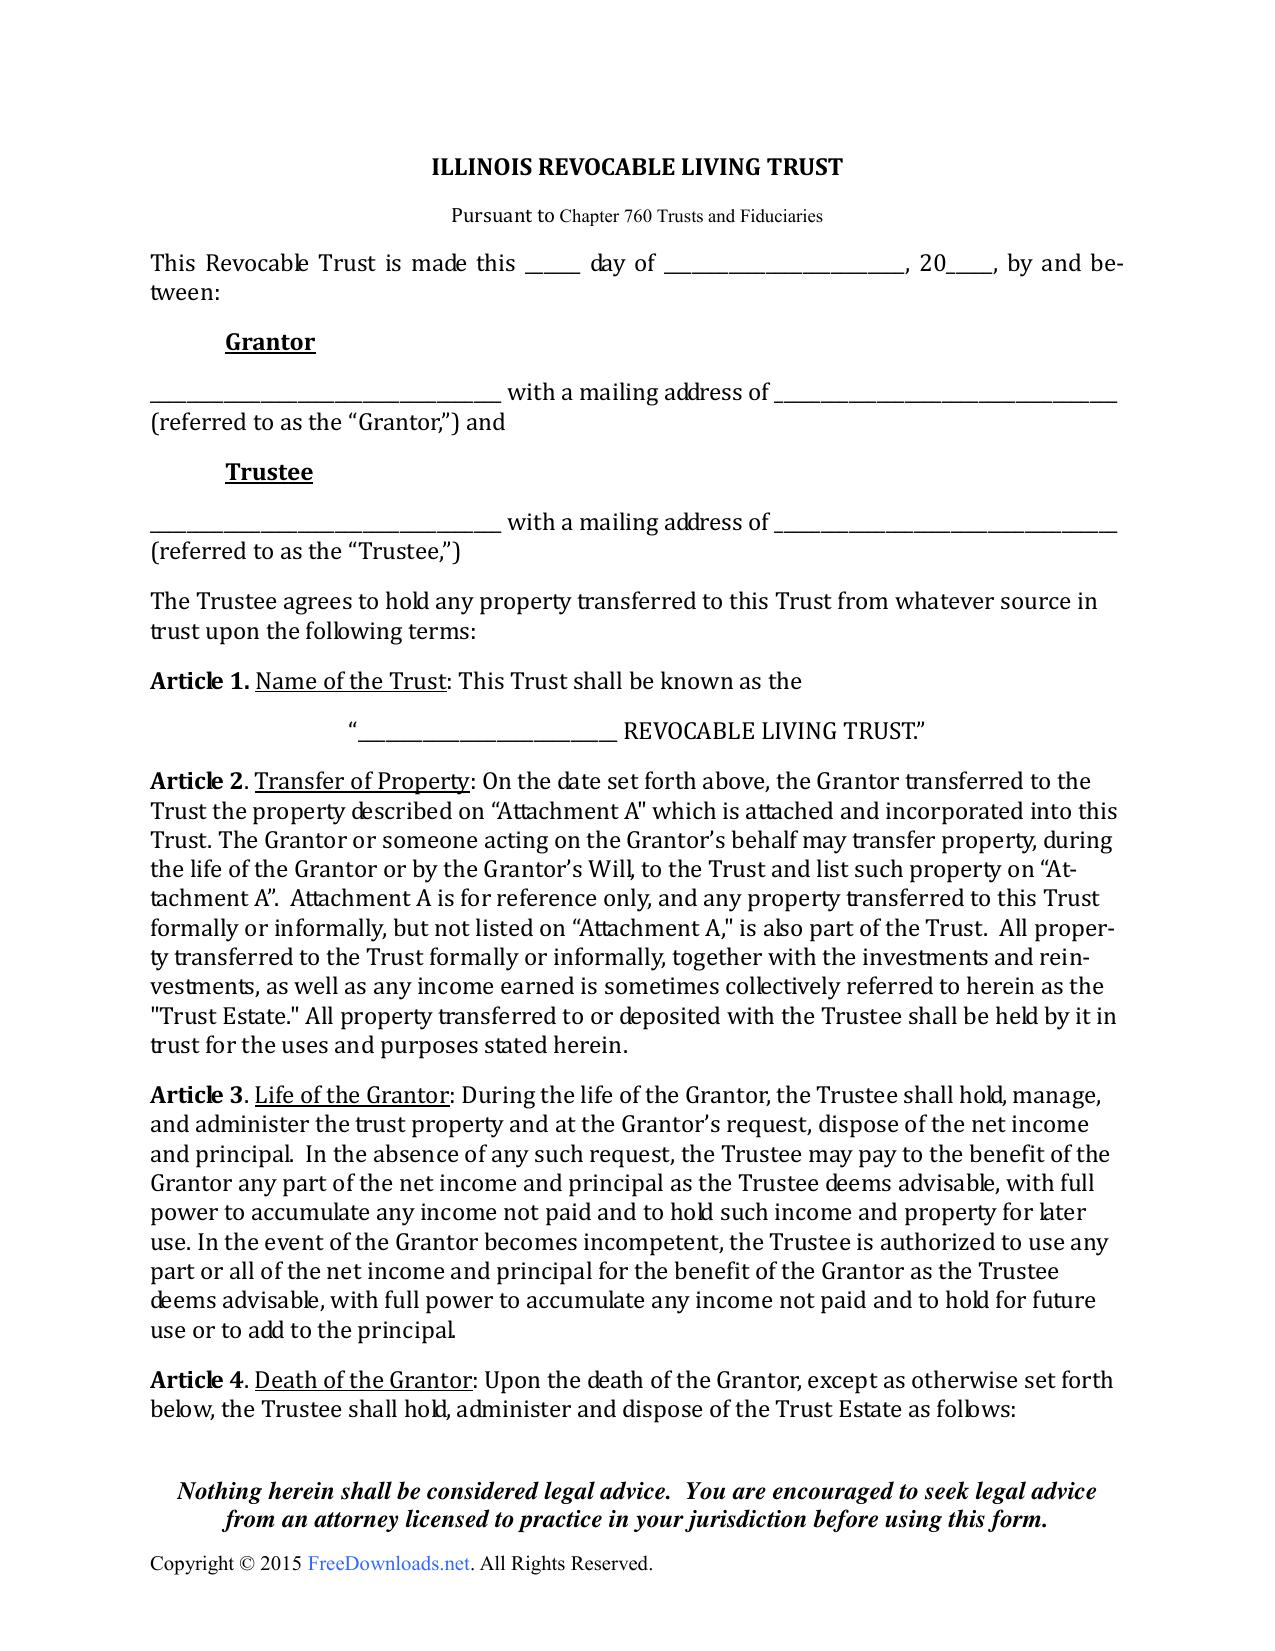 Revocable Trust Form Illinois